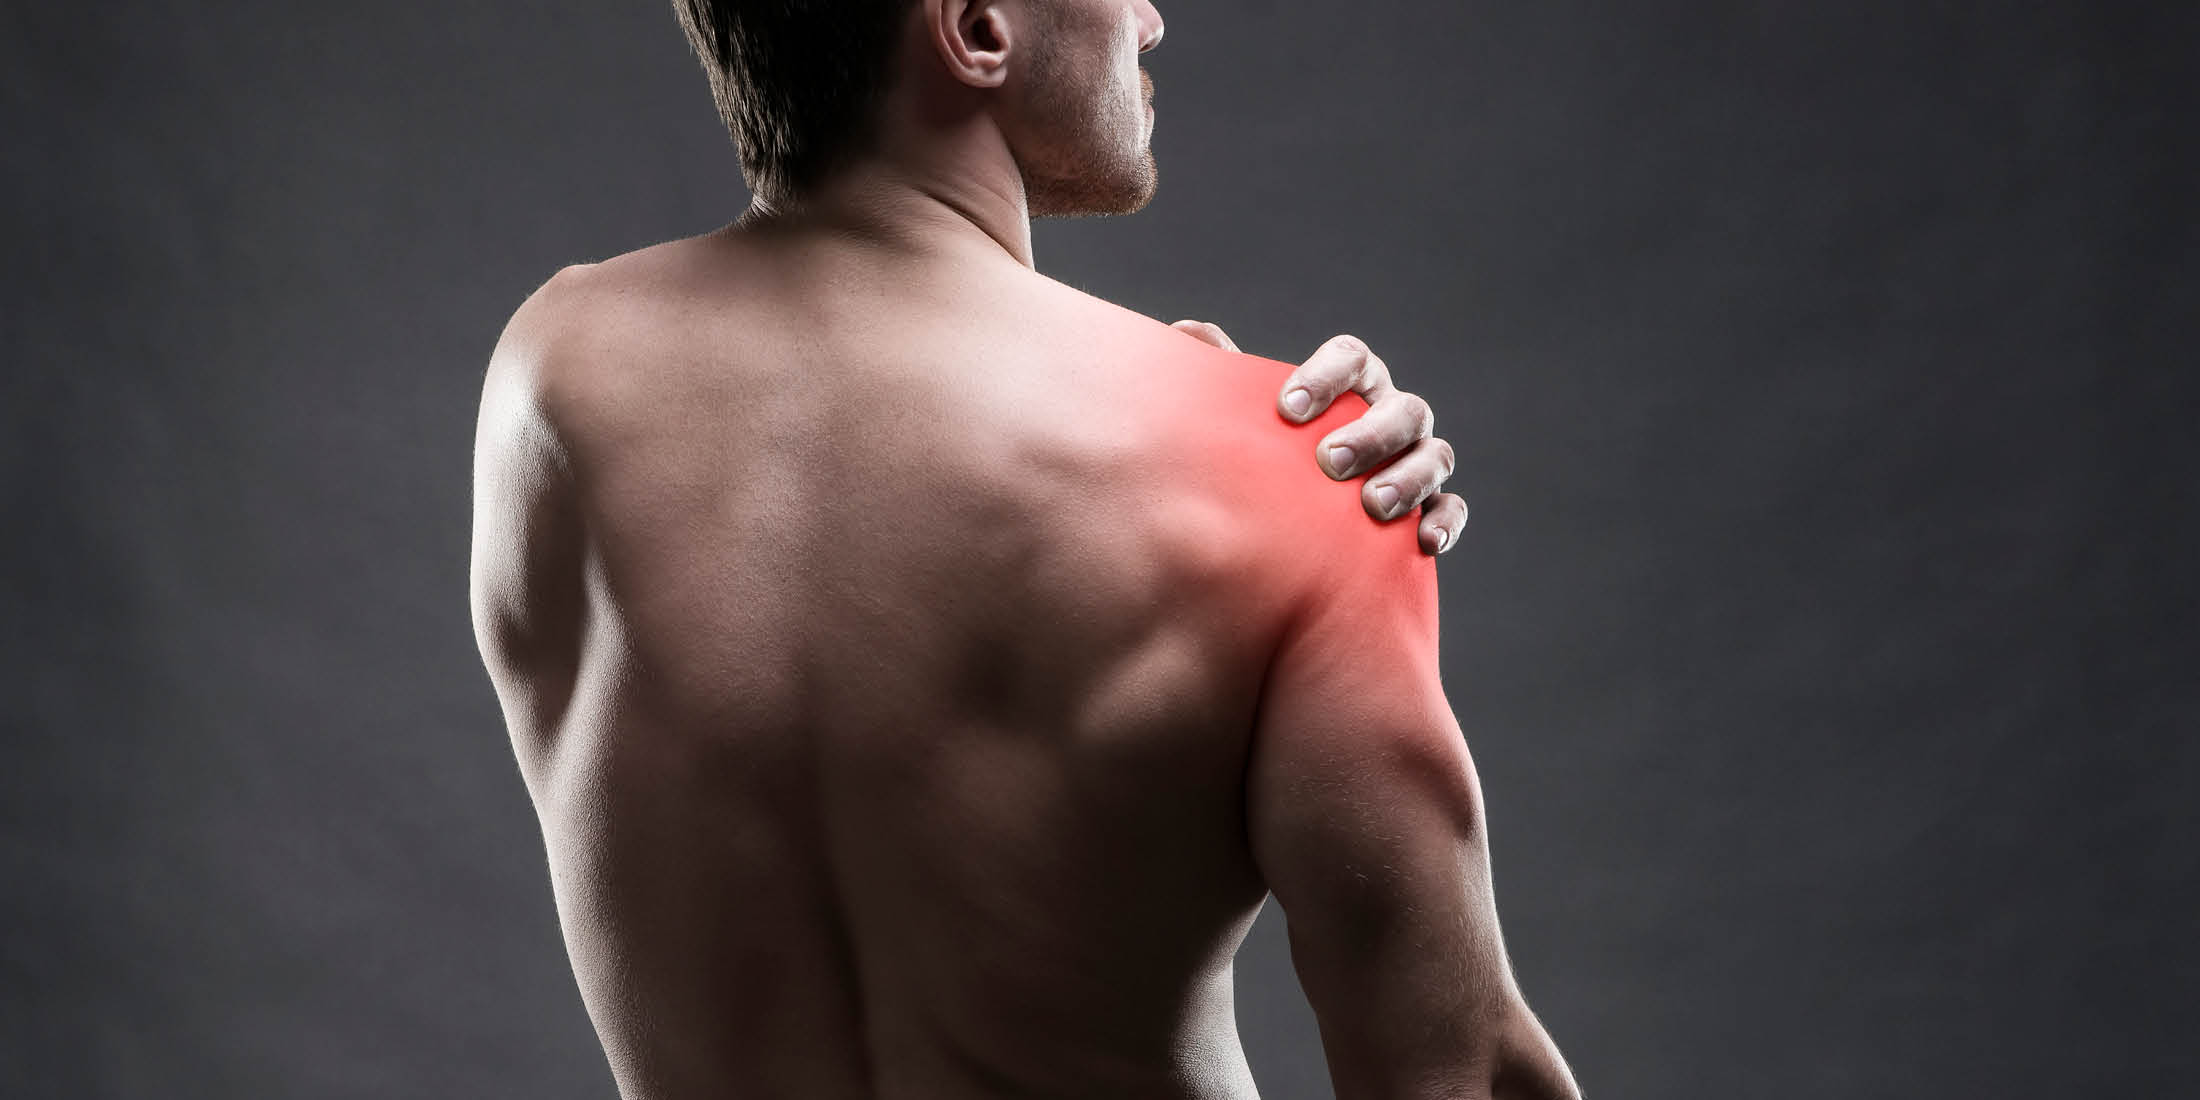 Osteopathic treatment for shoulder pain